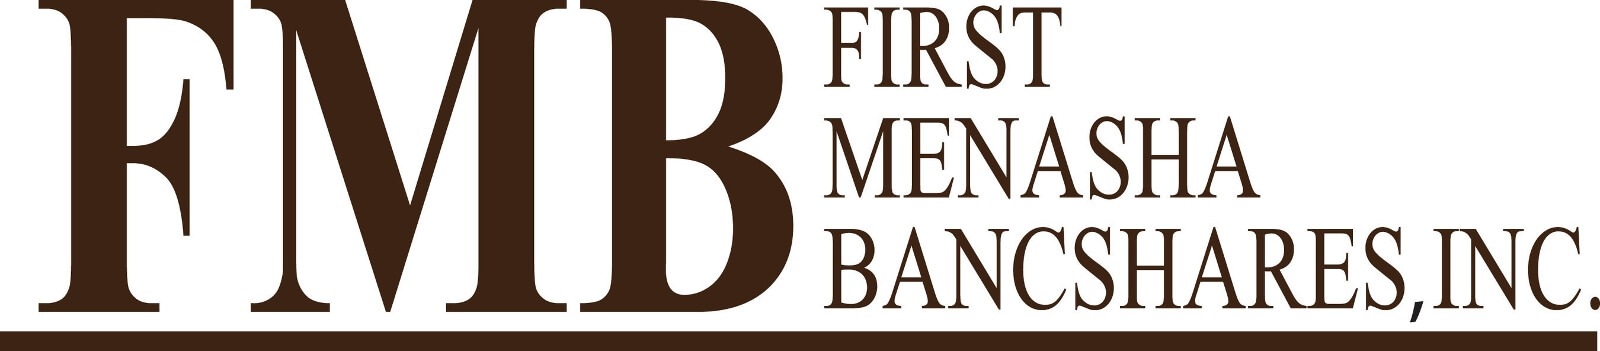 Nicolet Bankshares to Acquire First Menasha Bancshares